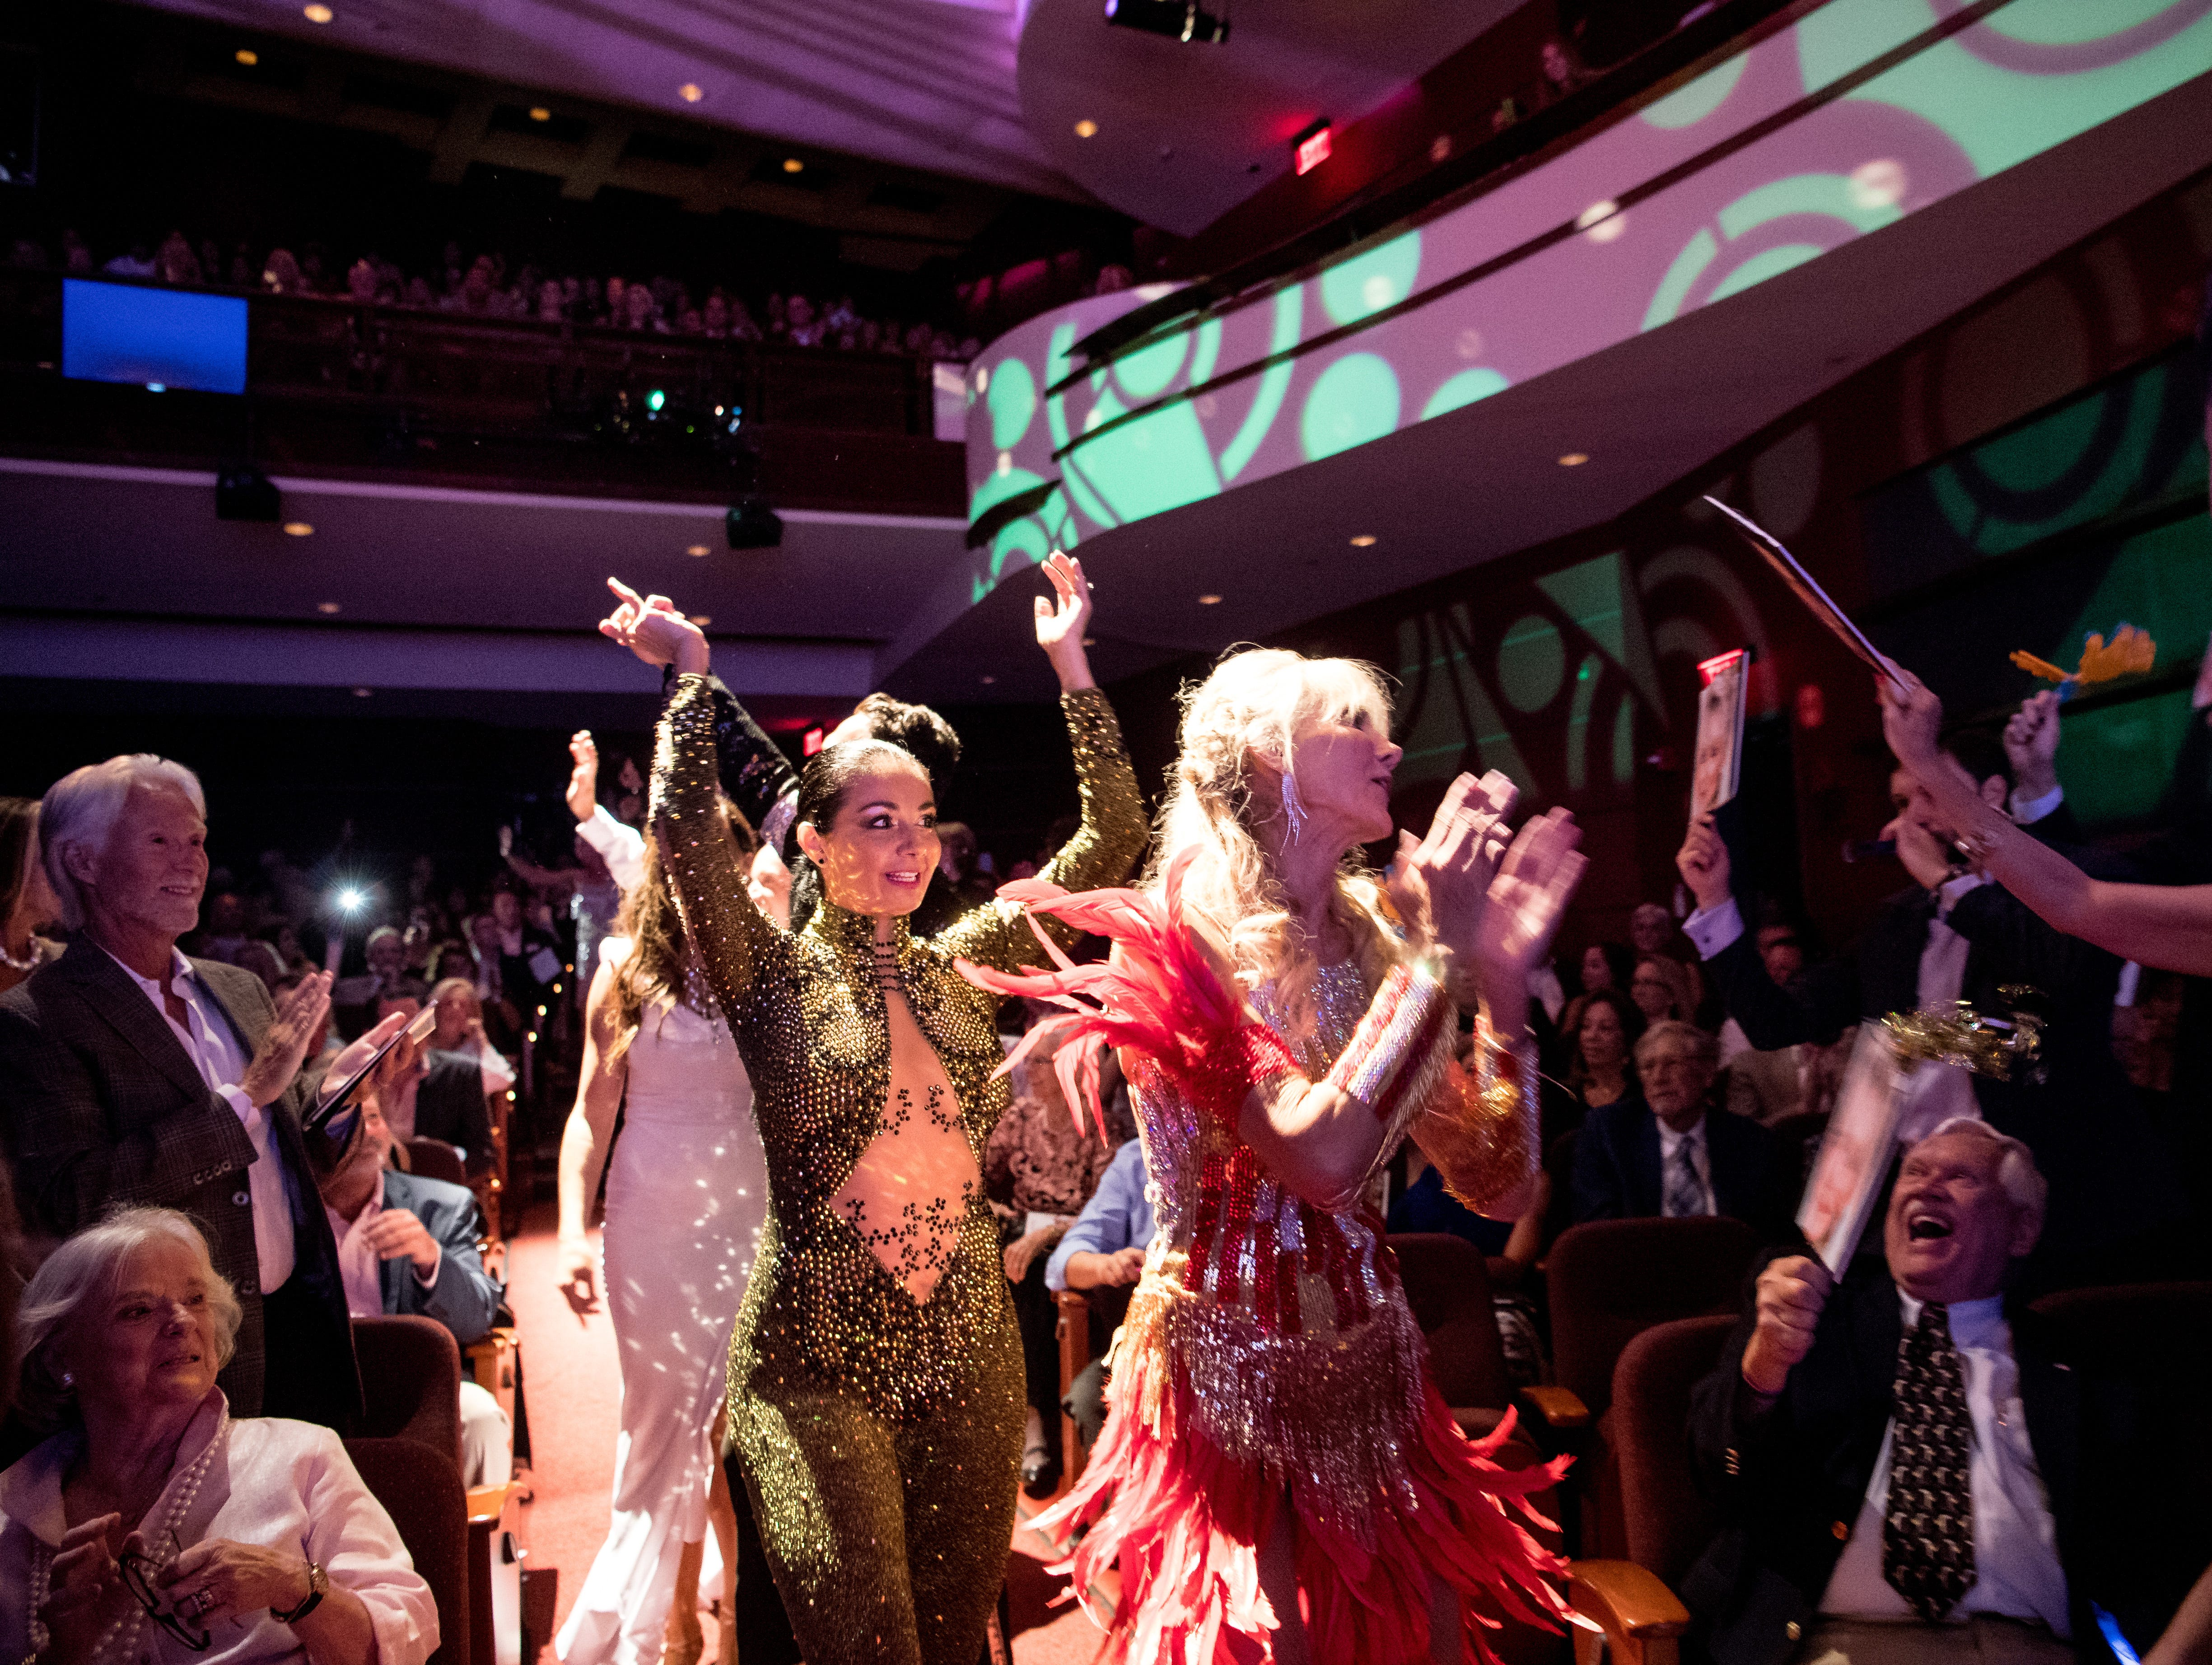 Competitors in the 11th annual Dancing with Vero's Stars — including dance instructor Marianella Tobard (left) and star Pamela DeChellis — are cheered to the stage at the beginning of the show Saturday, May 11, 2019, at Riverside Theatre in Vero Beach. Ten couples competed for a mirror ball trophy during the event, which raised funds for Indian River County Healthy Start Coalition.